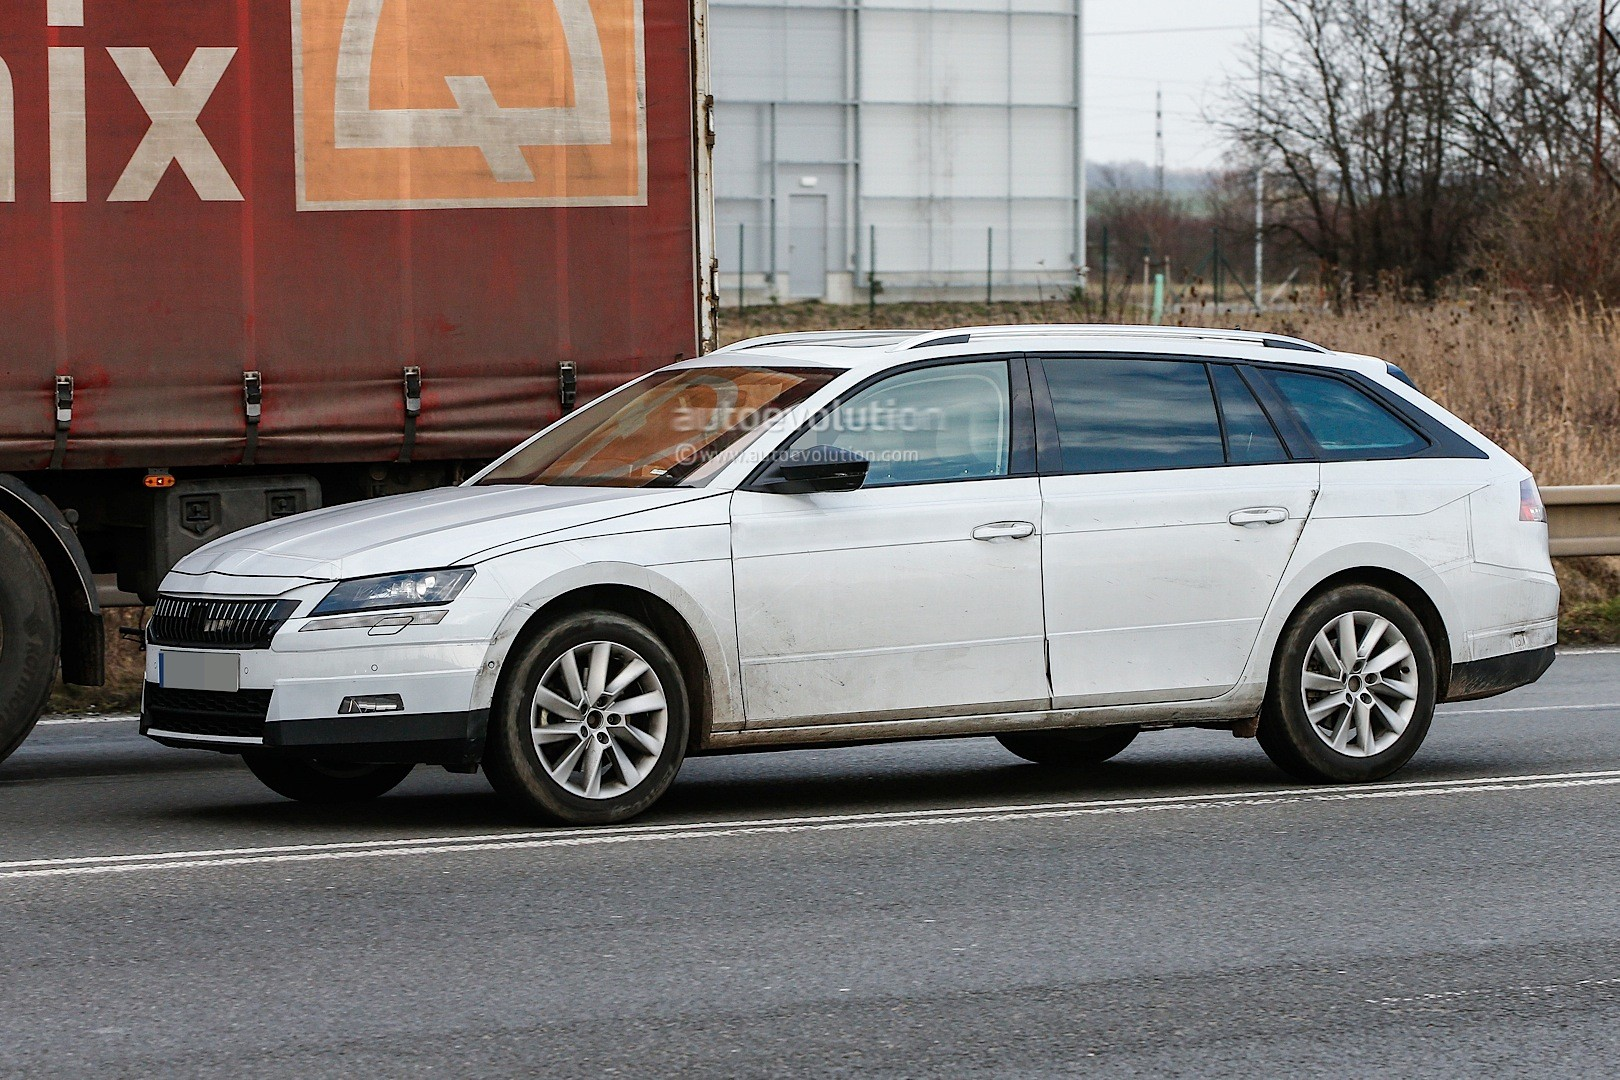 spyshots 2015 skoda superb combi estate first photos autoevolution. Black Bedroom Furniture Sets. Home Design Ideas